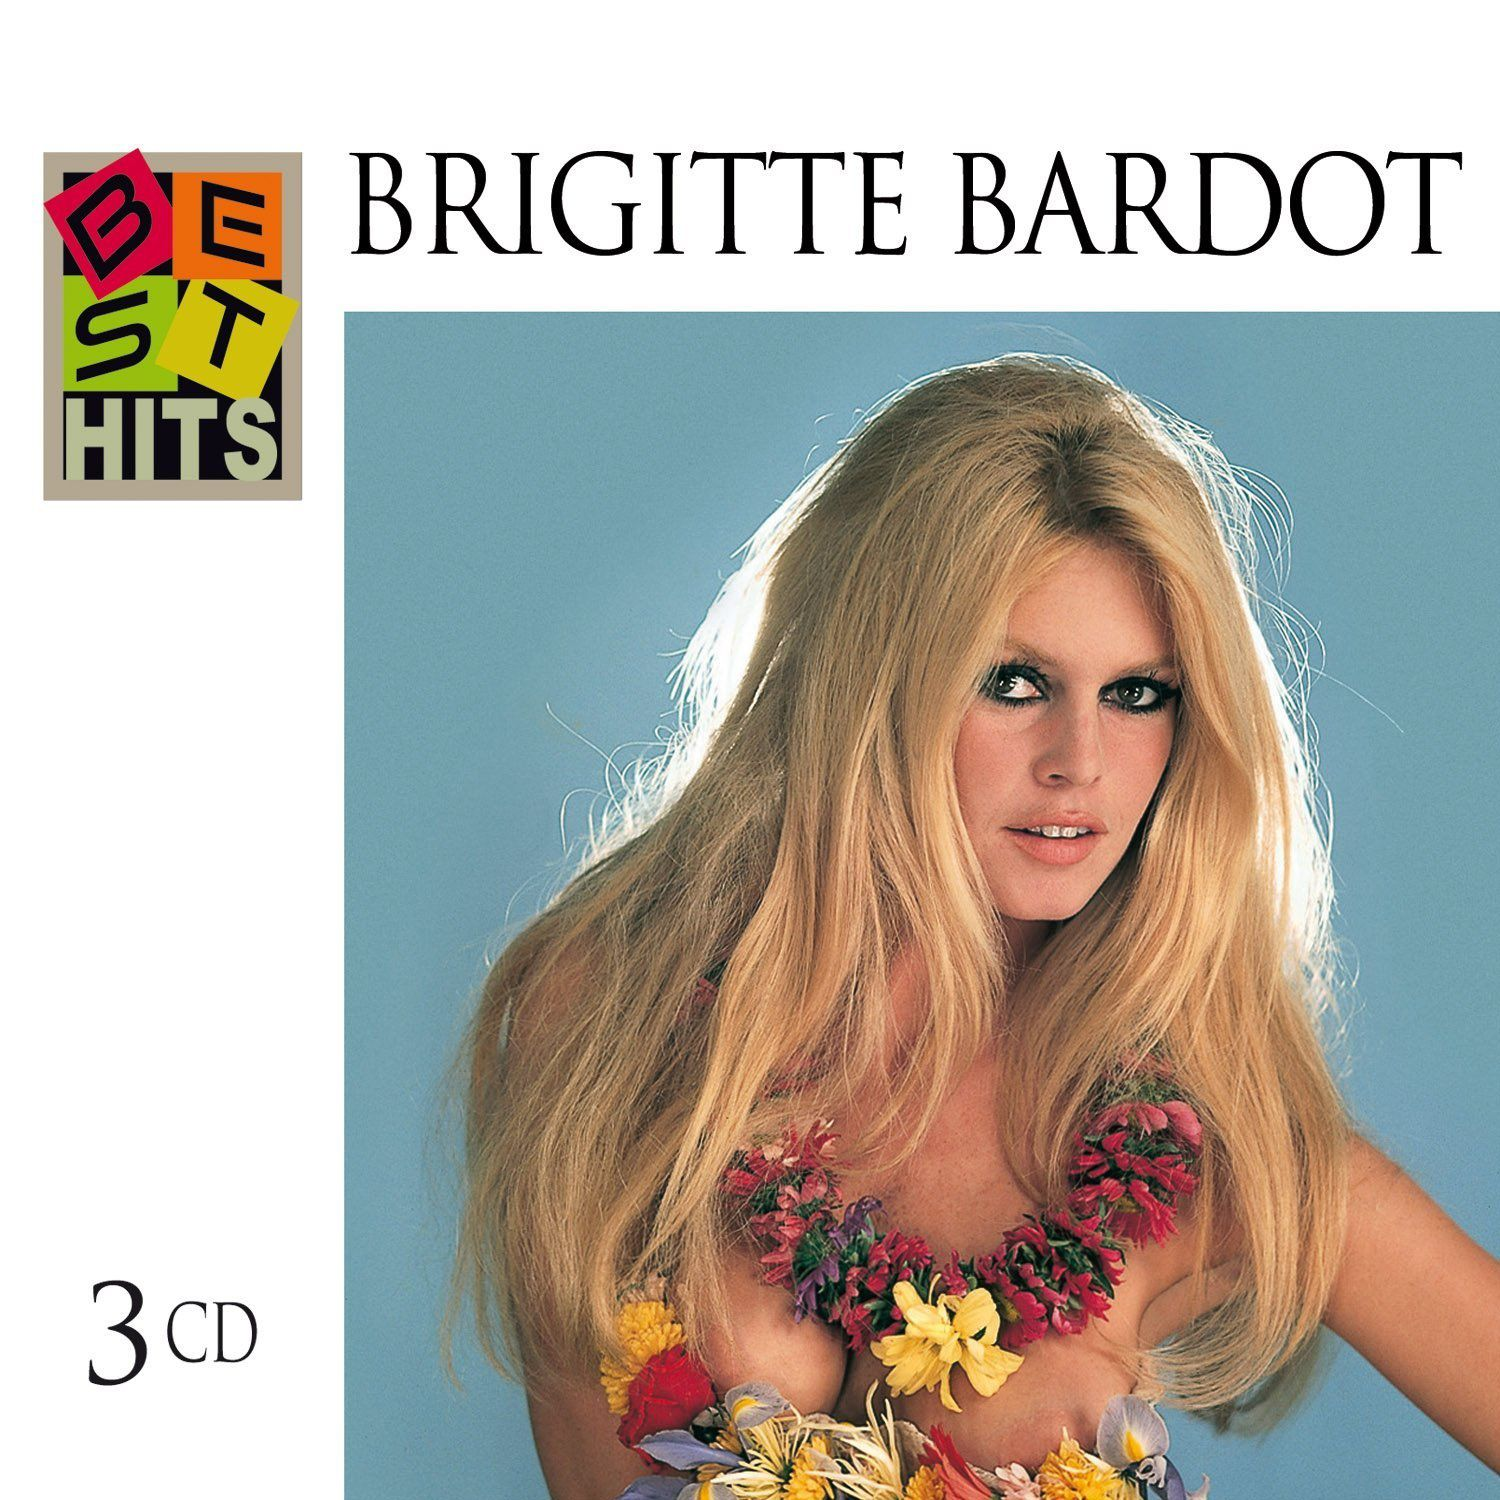 Best Hits Compilation Brigitte Bardot